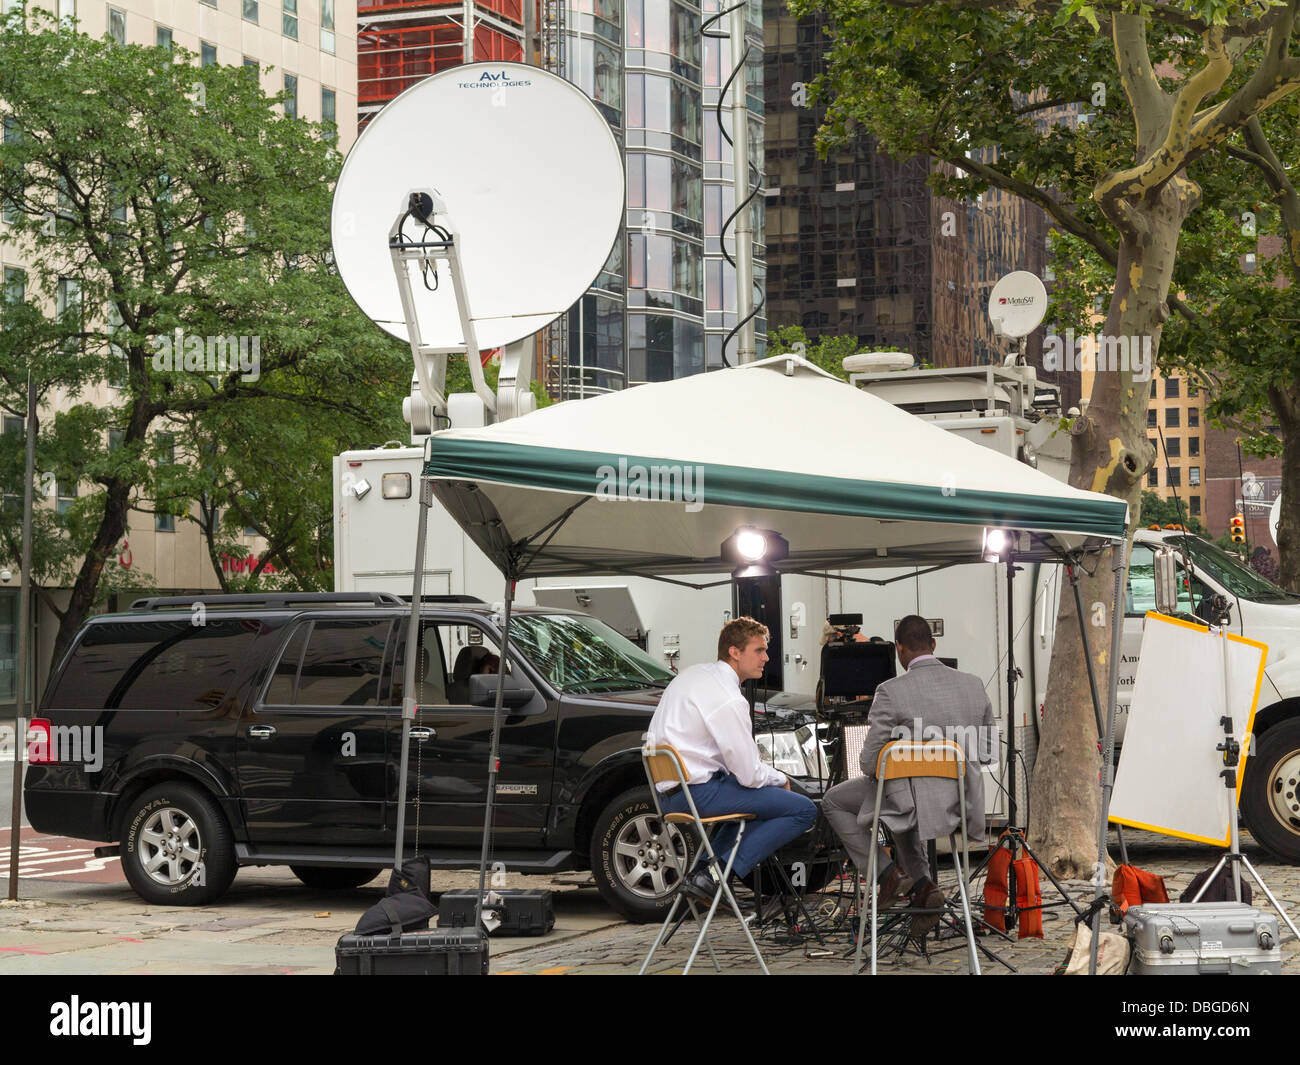 A TV outside broadcast unit working in NYC - Stock Image